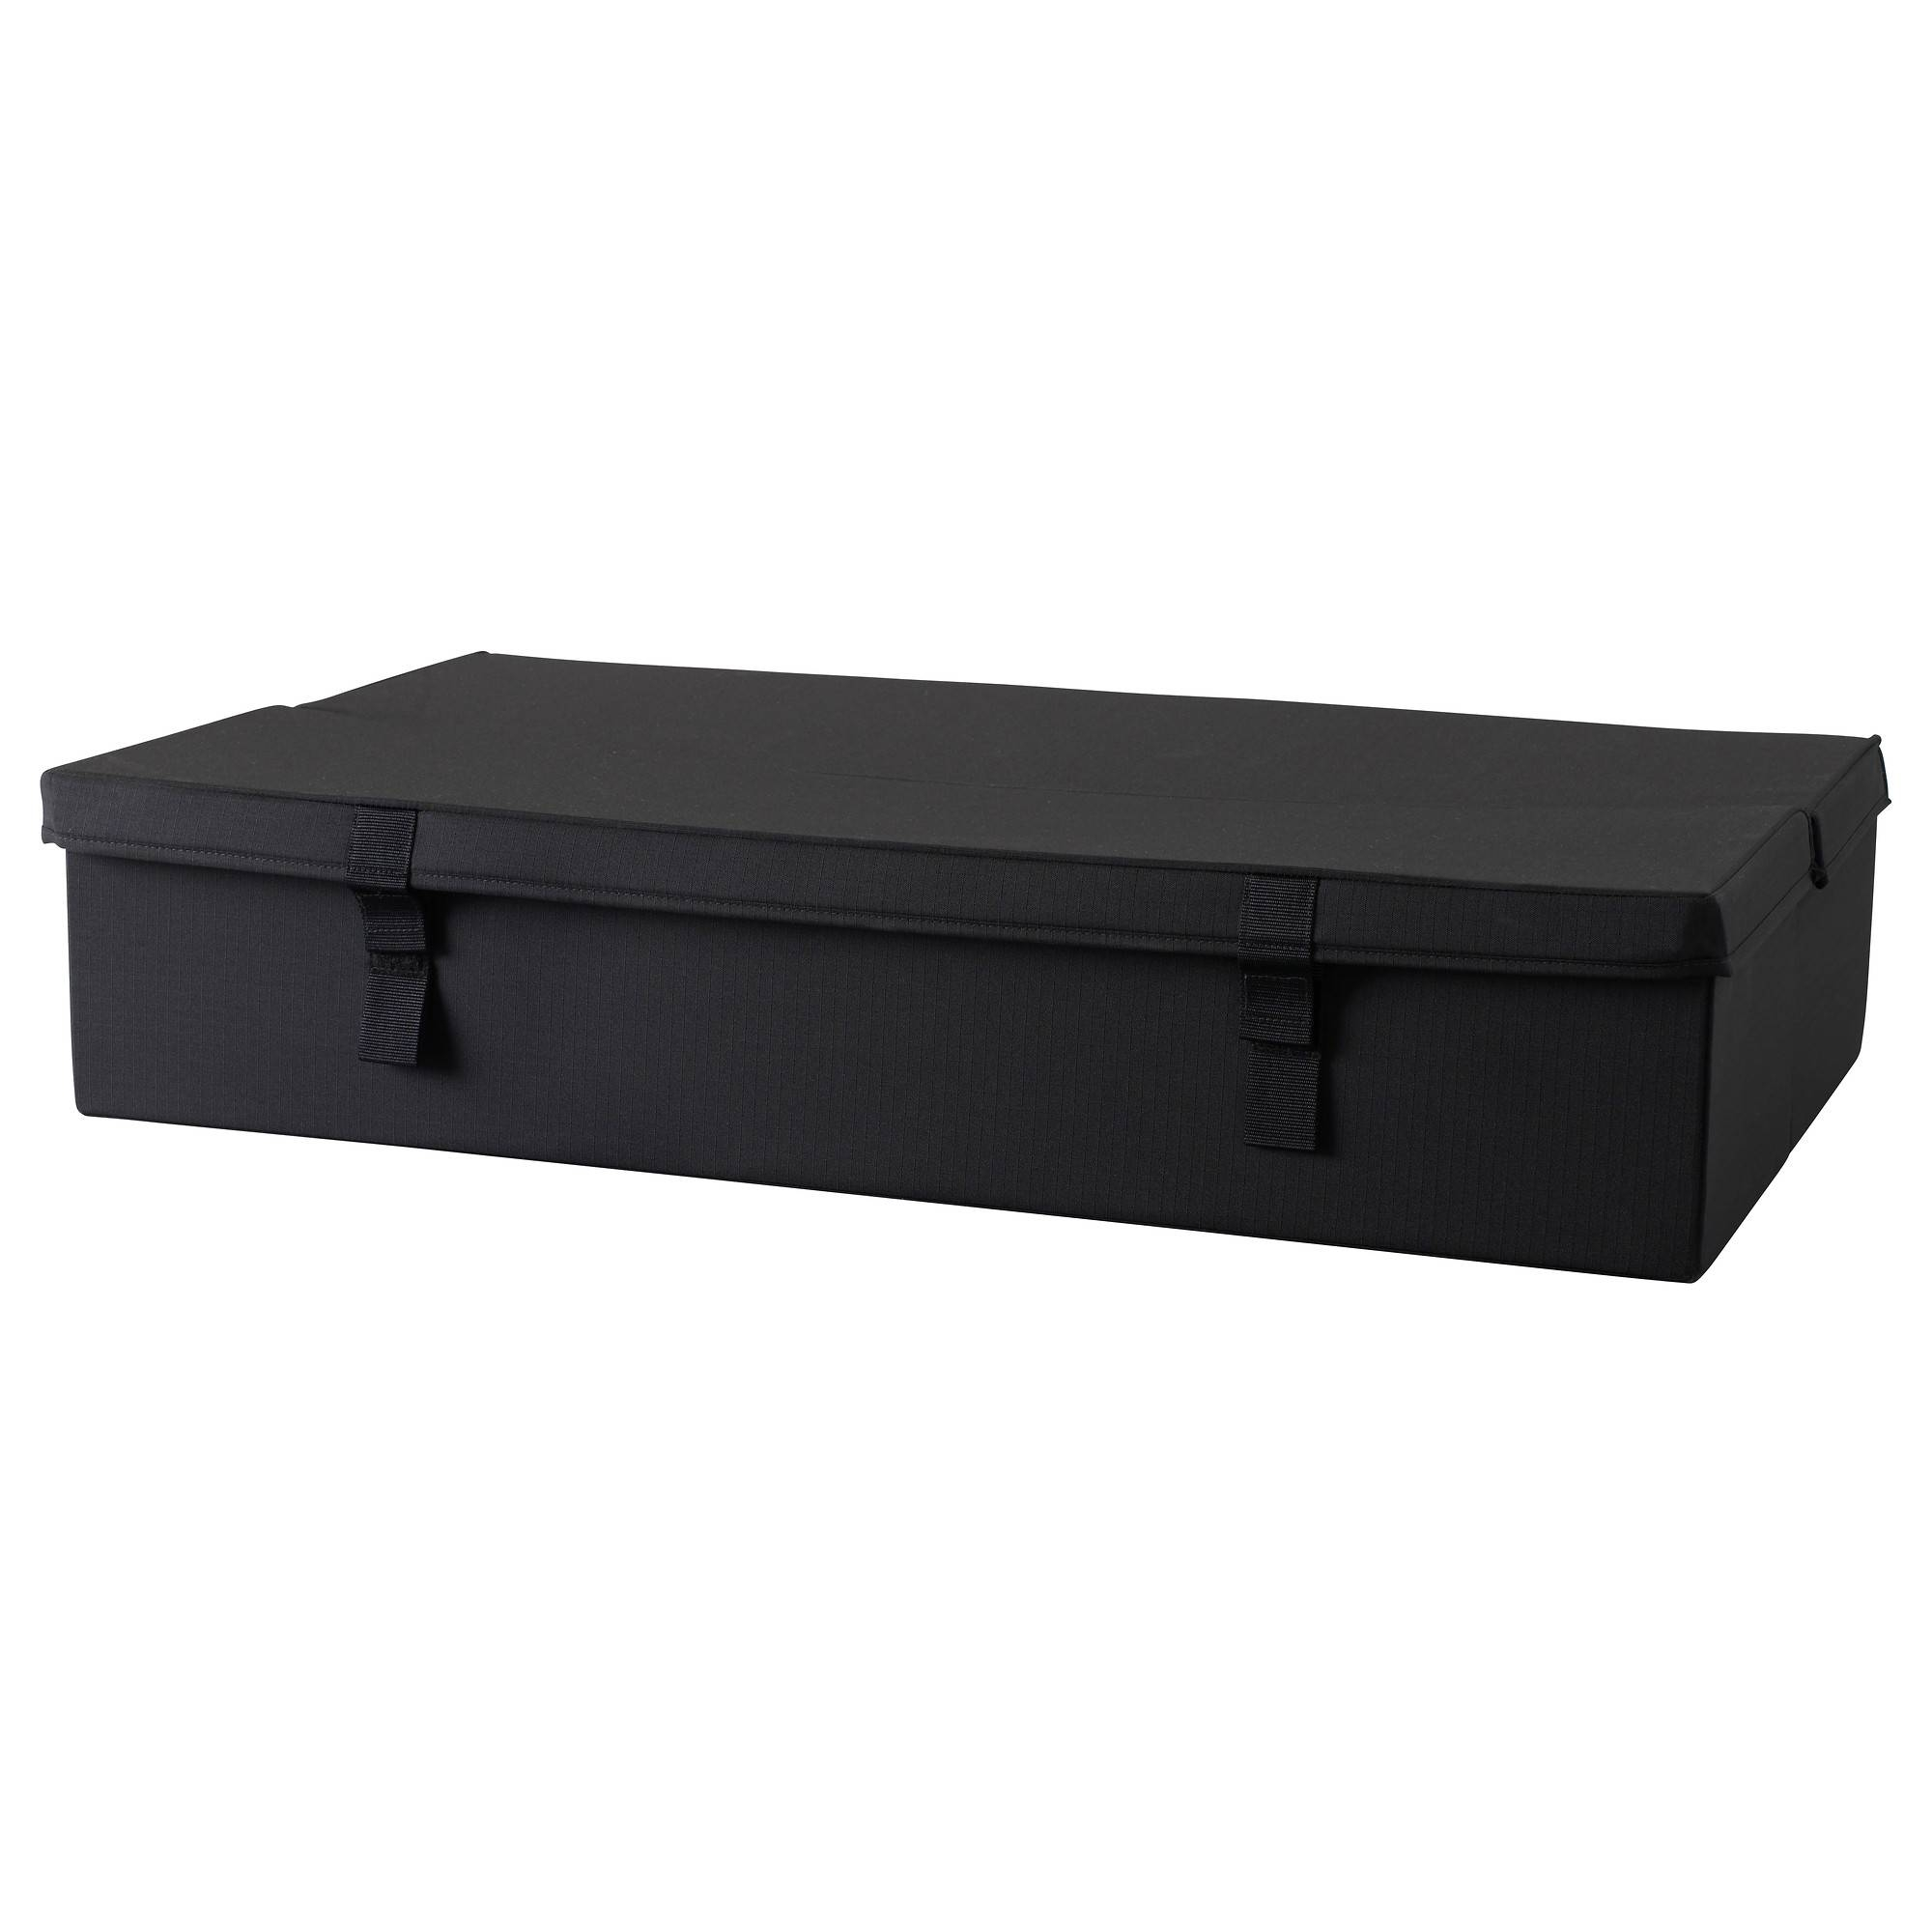 Lycksele Storage Box 2-Seat Sofa-Bed Black - Ikea intended for Ikea Storage Sofa Bed (Image 22 of 25)